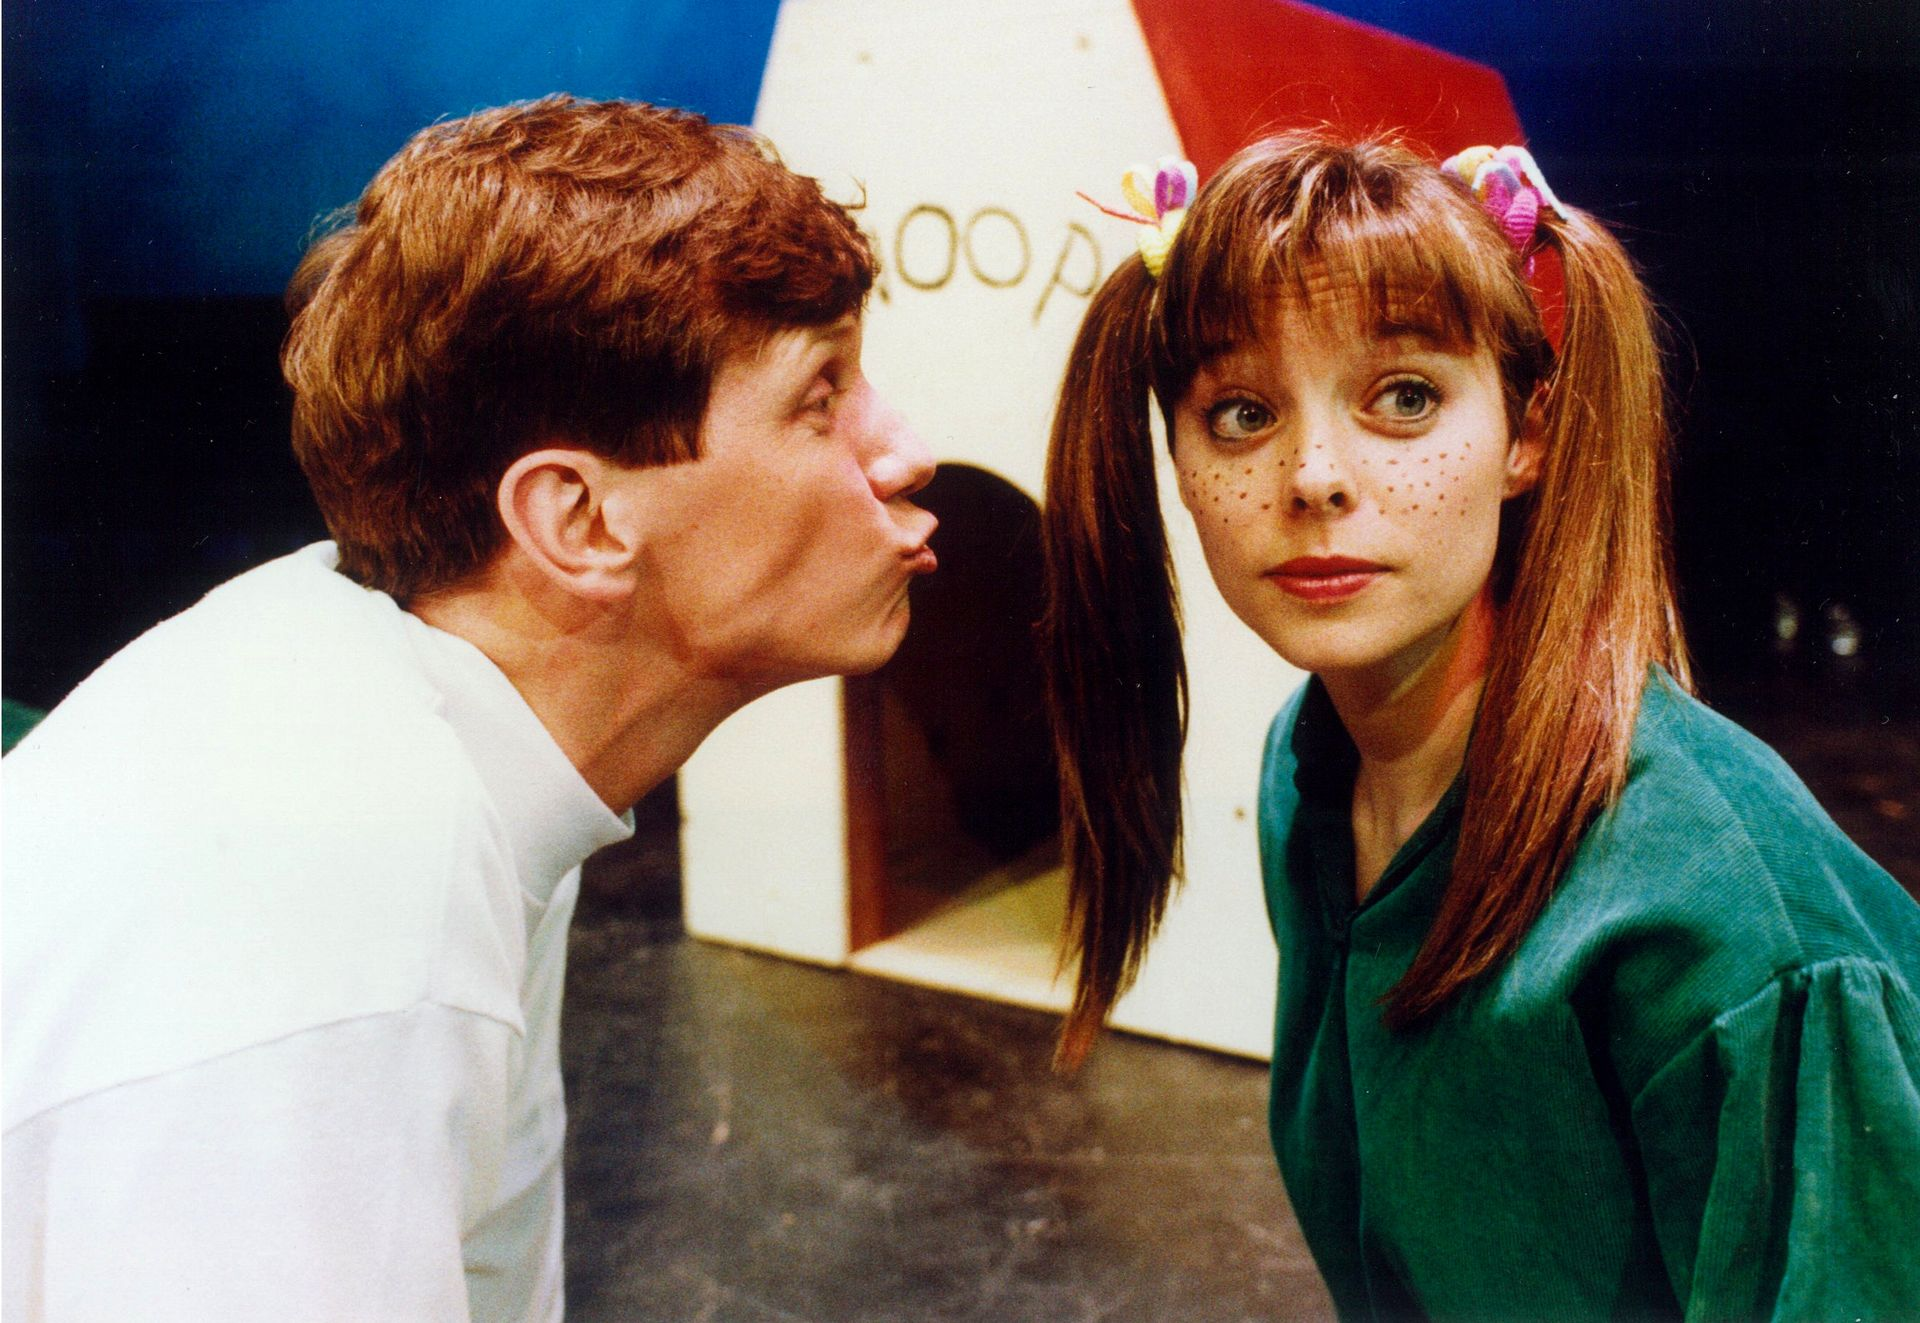 Daniel Hall and Colleen Hood in You're a Good Man, Charlie Brown